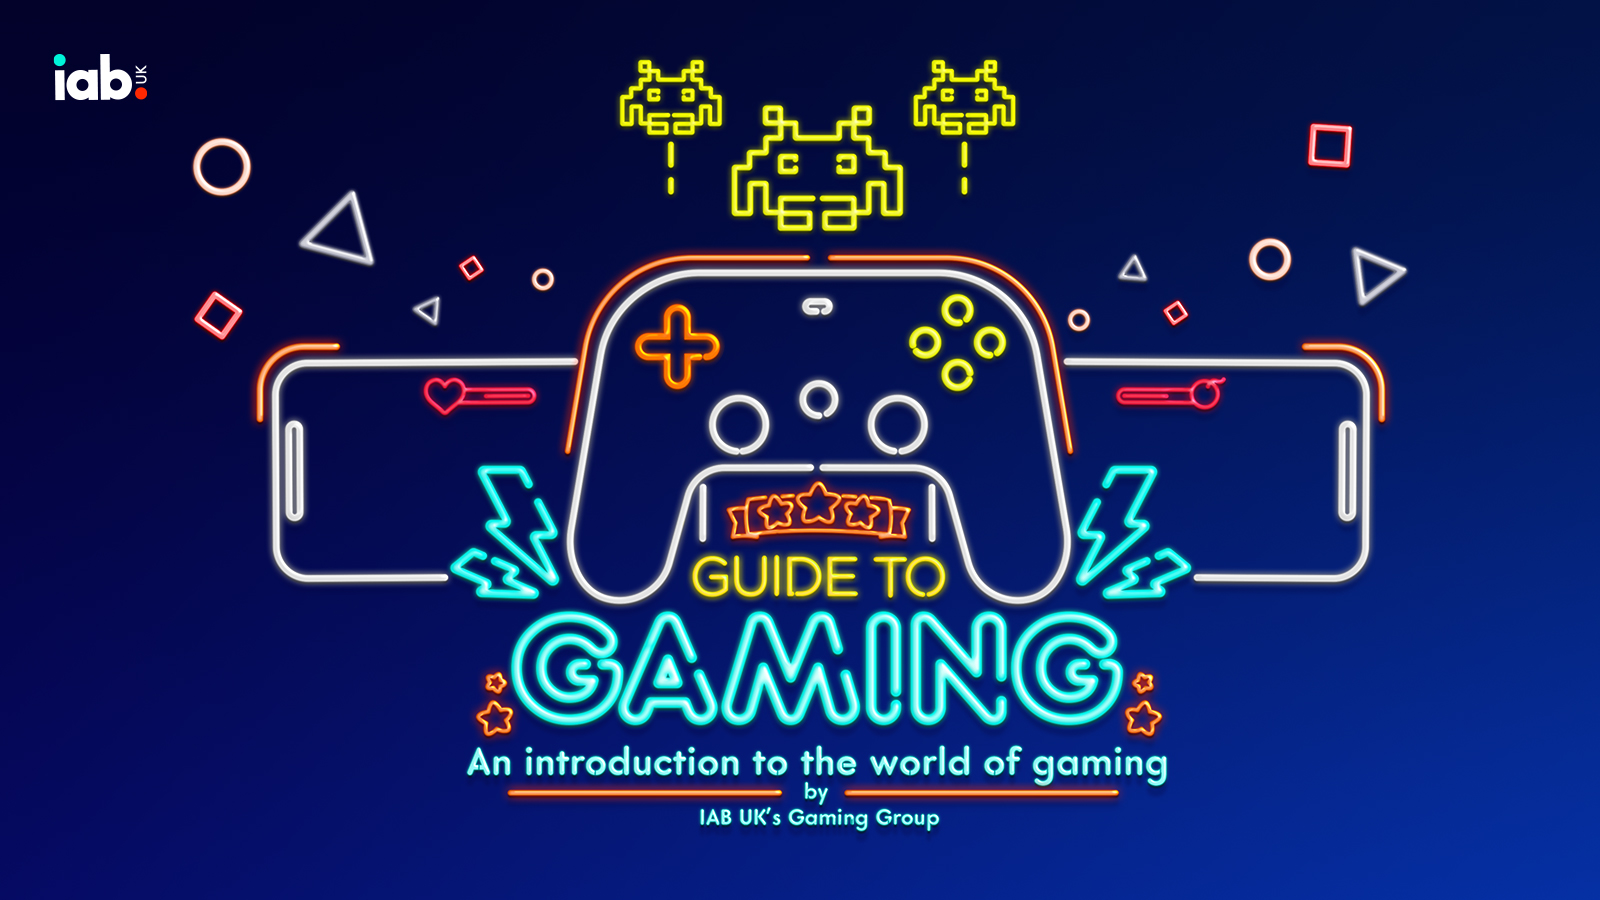 IAB UK Guide to Gaming